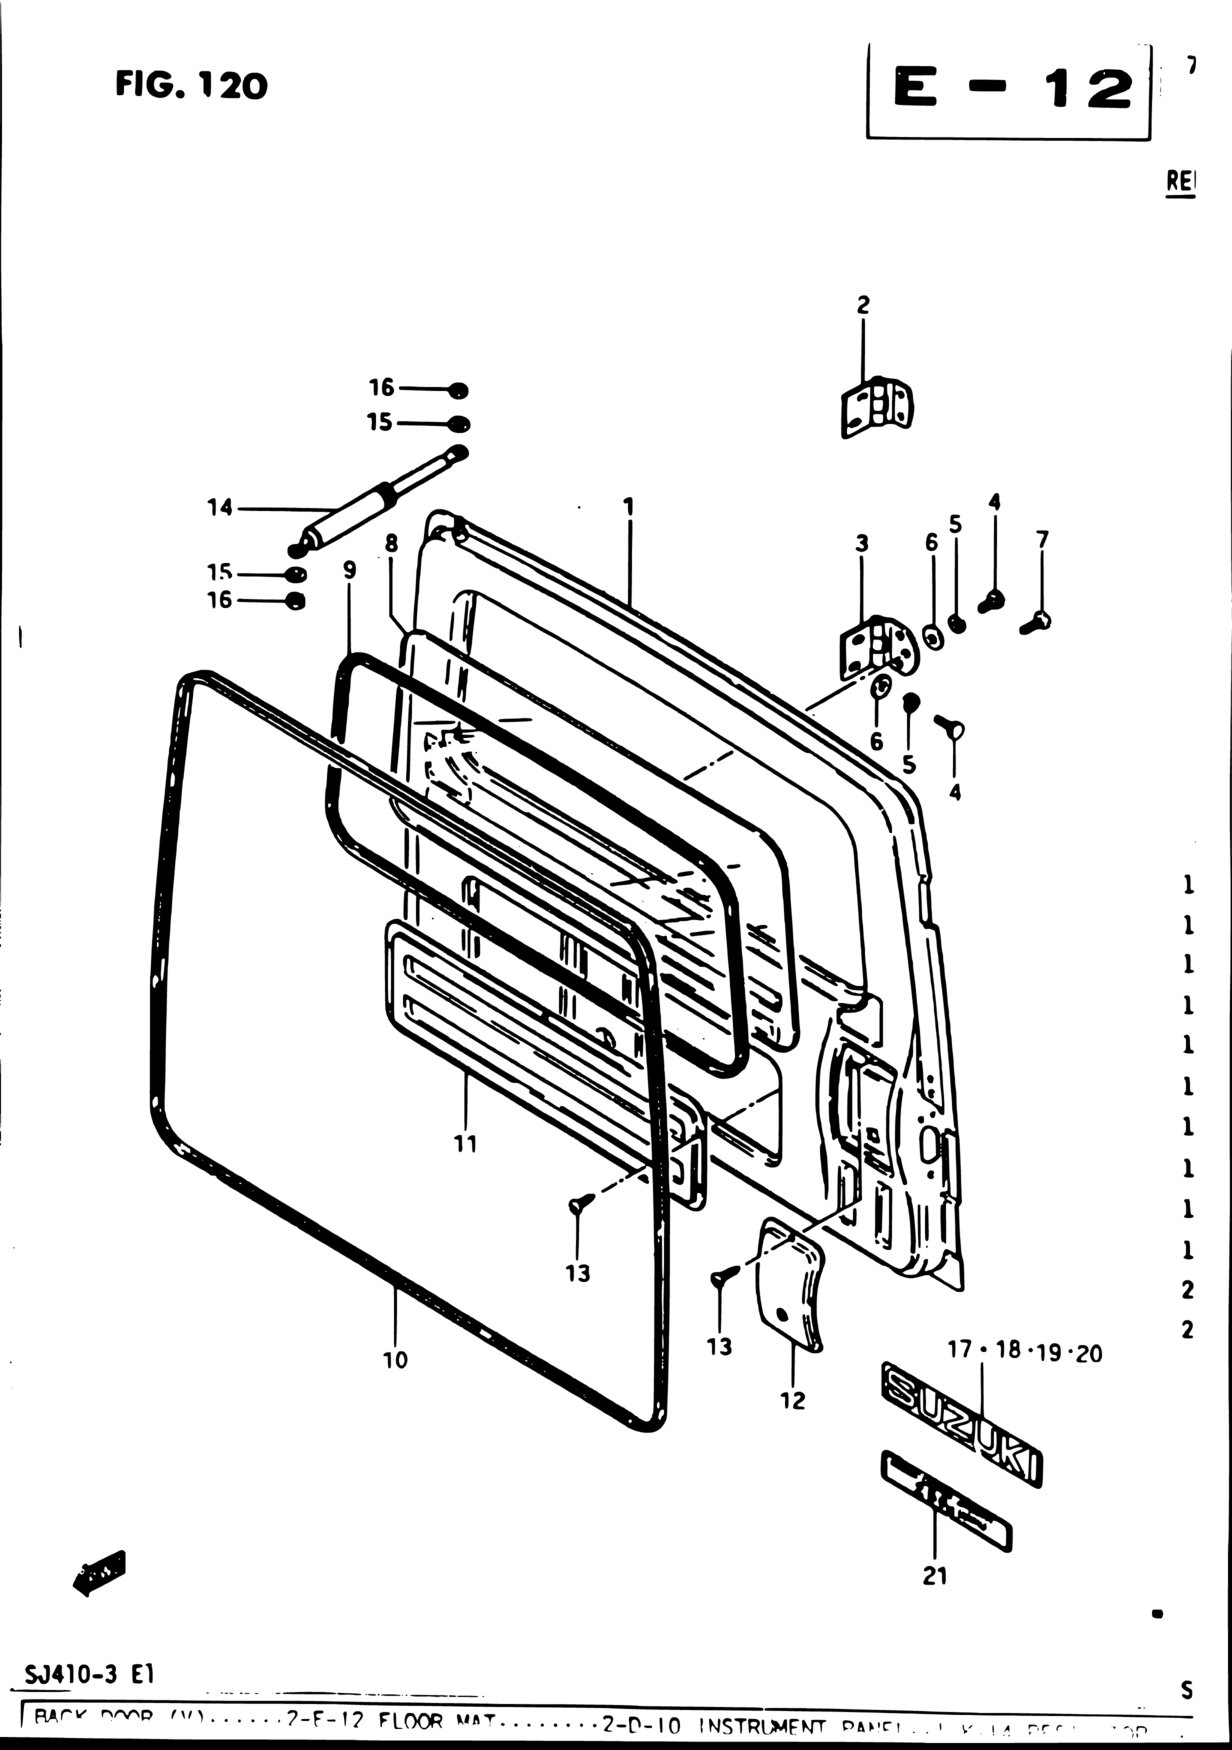 Suzuki Door Schematic - Library Of Wiring Diagrams •